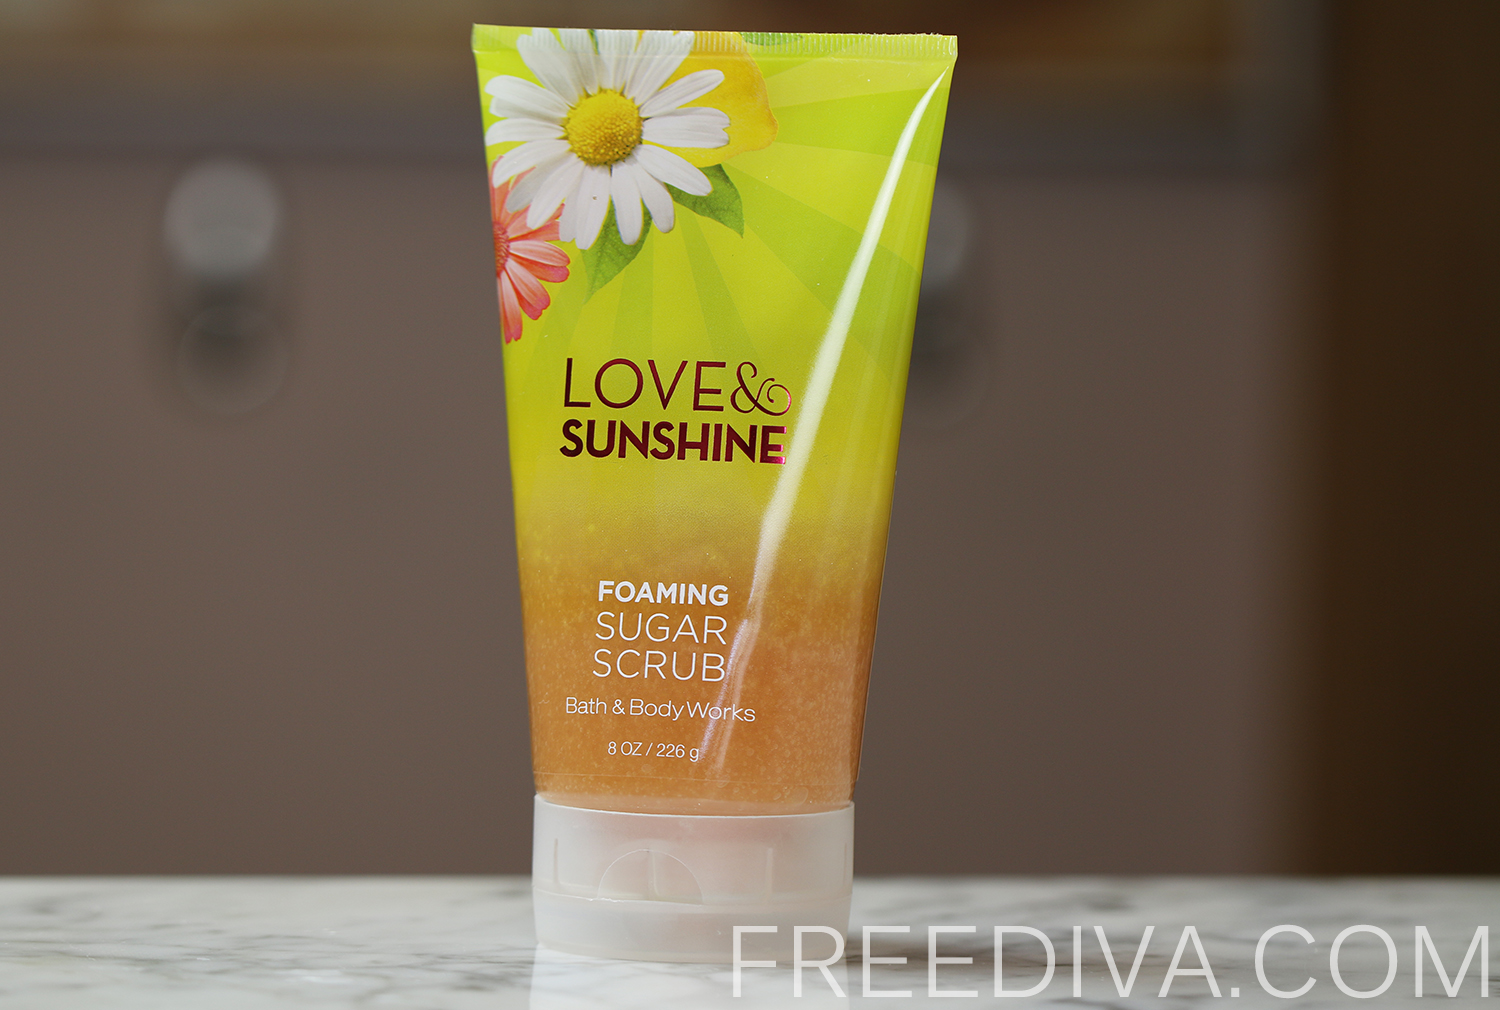 Love & Sunshine Foaming Sugar Scrub Bath & Body Works